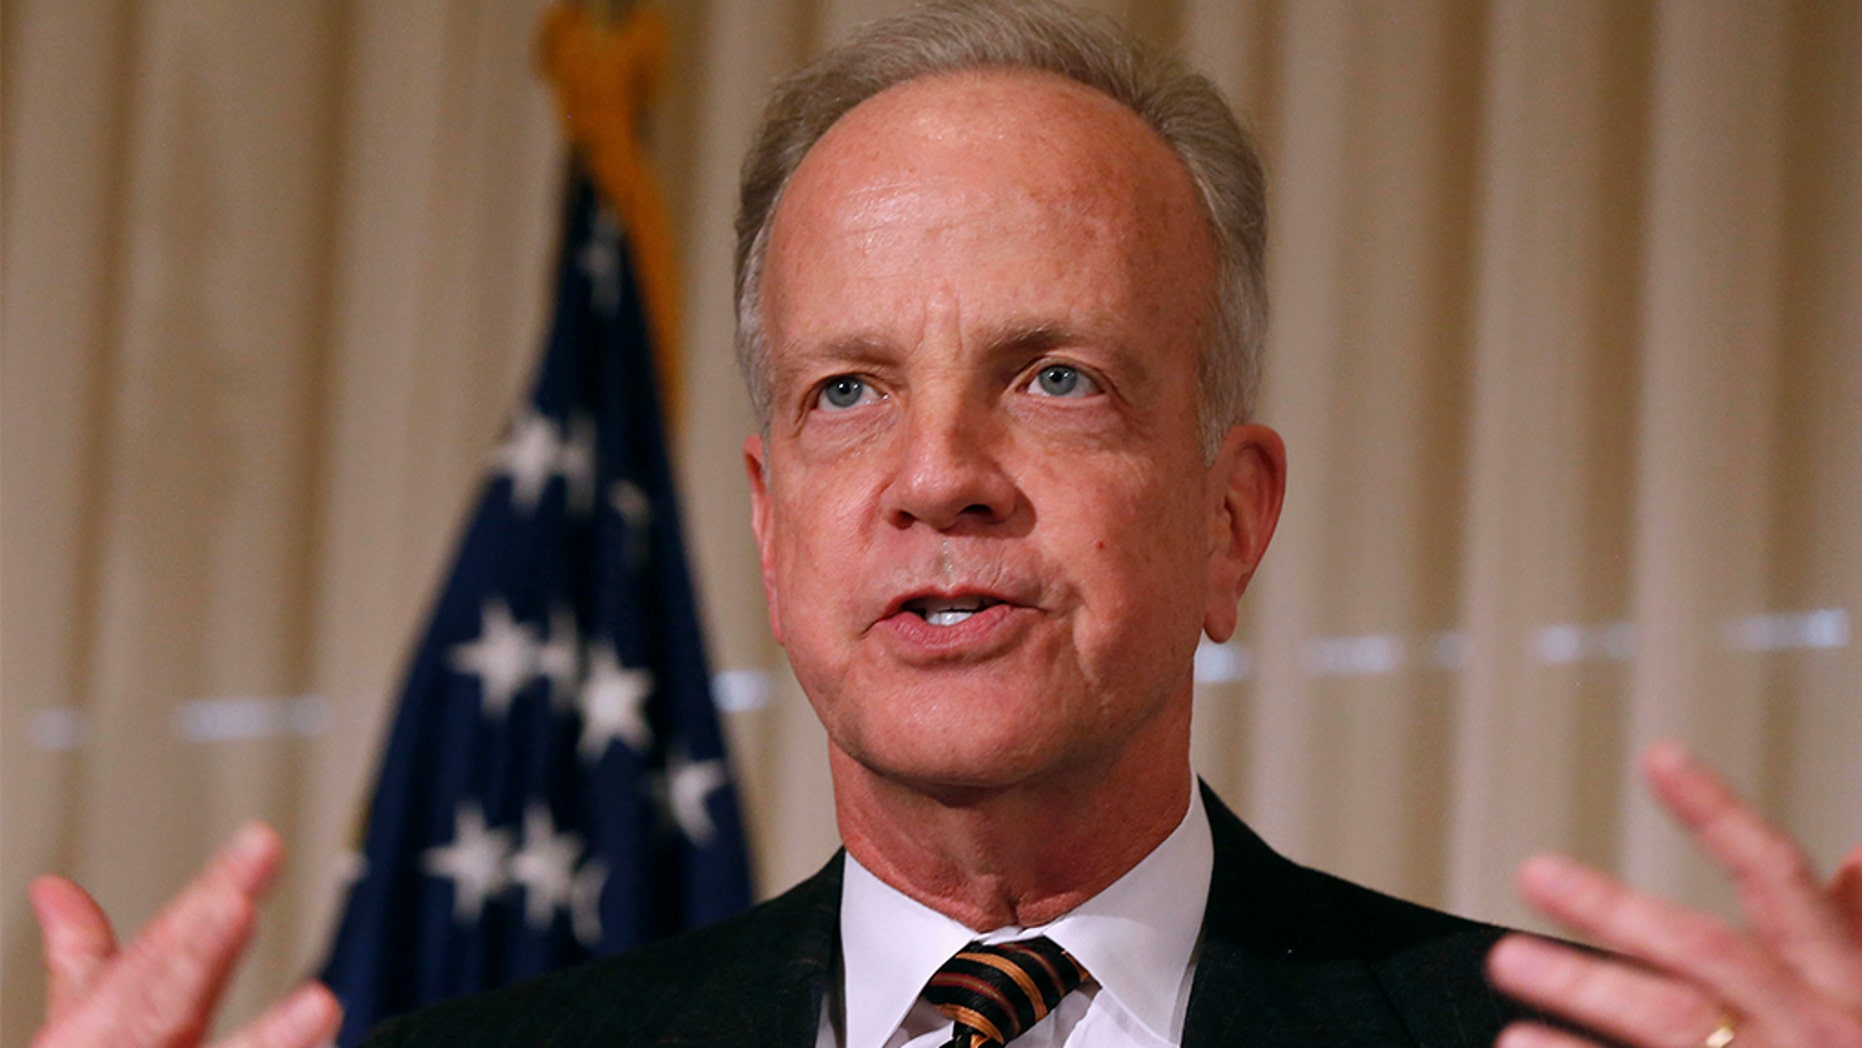 U.S. Senator Jerry Moran (R-KS) delivers remarks at the public launch of the U.S. Agriculture Coalition for Cuba while at the National Press Club in Washington, January 8, 2015. REUTERS/Larry Downing